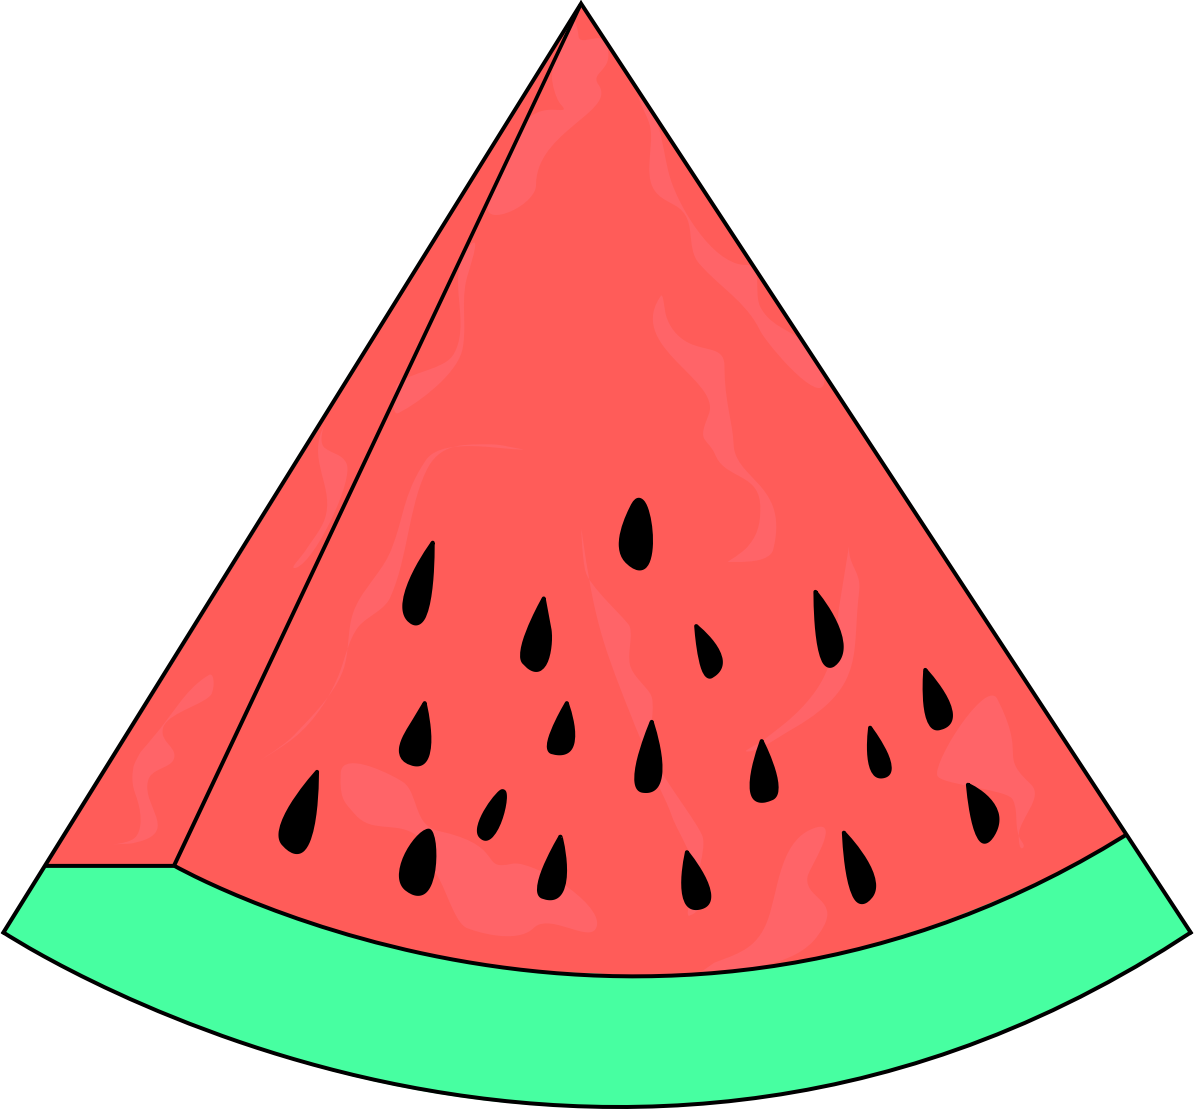 Melon clipart watermelon slice Slice Watermelon png art clip